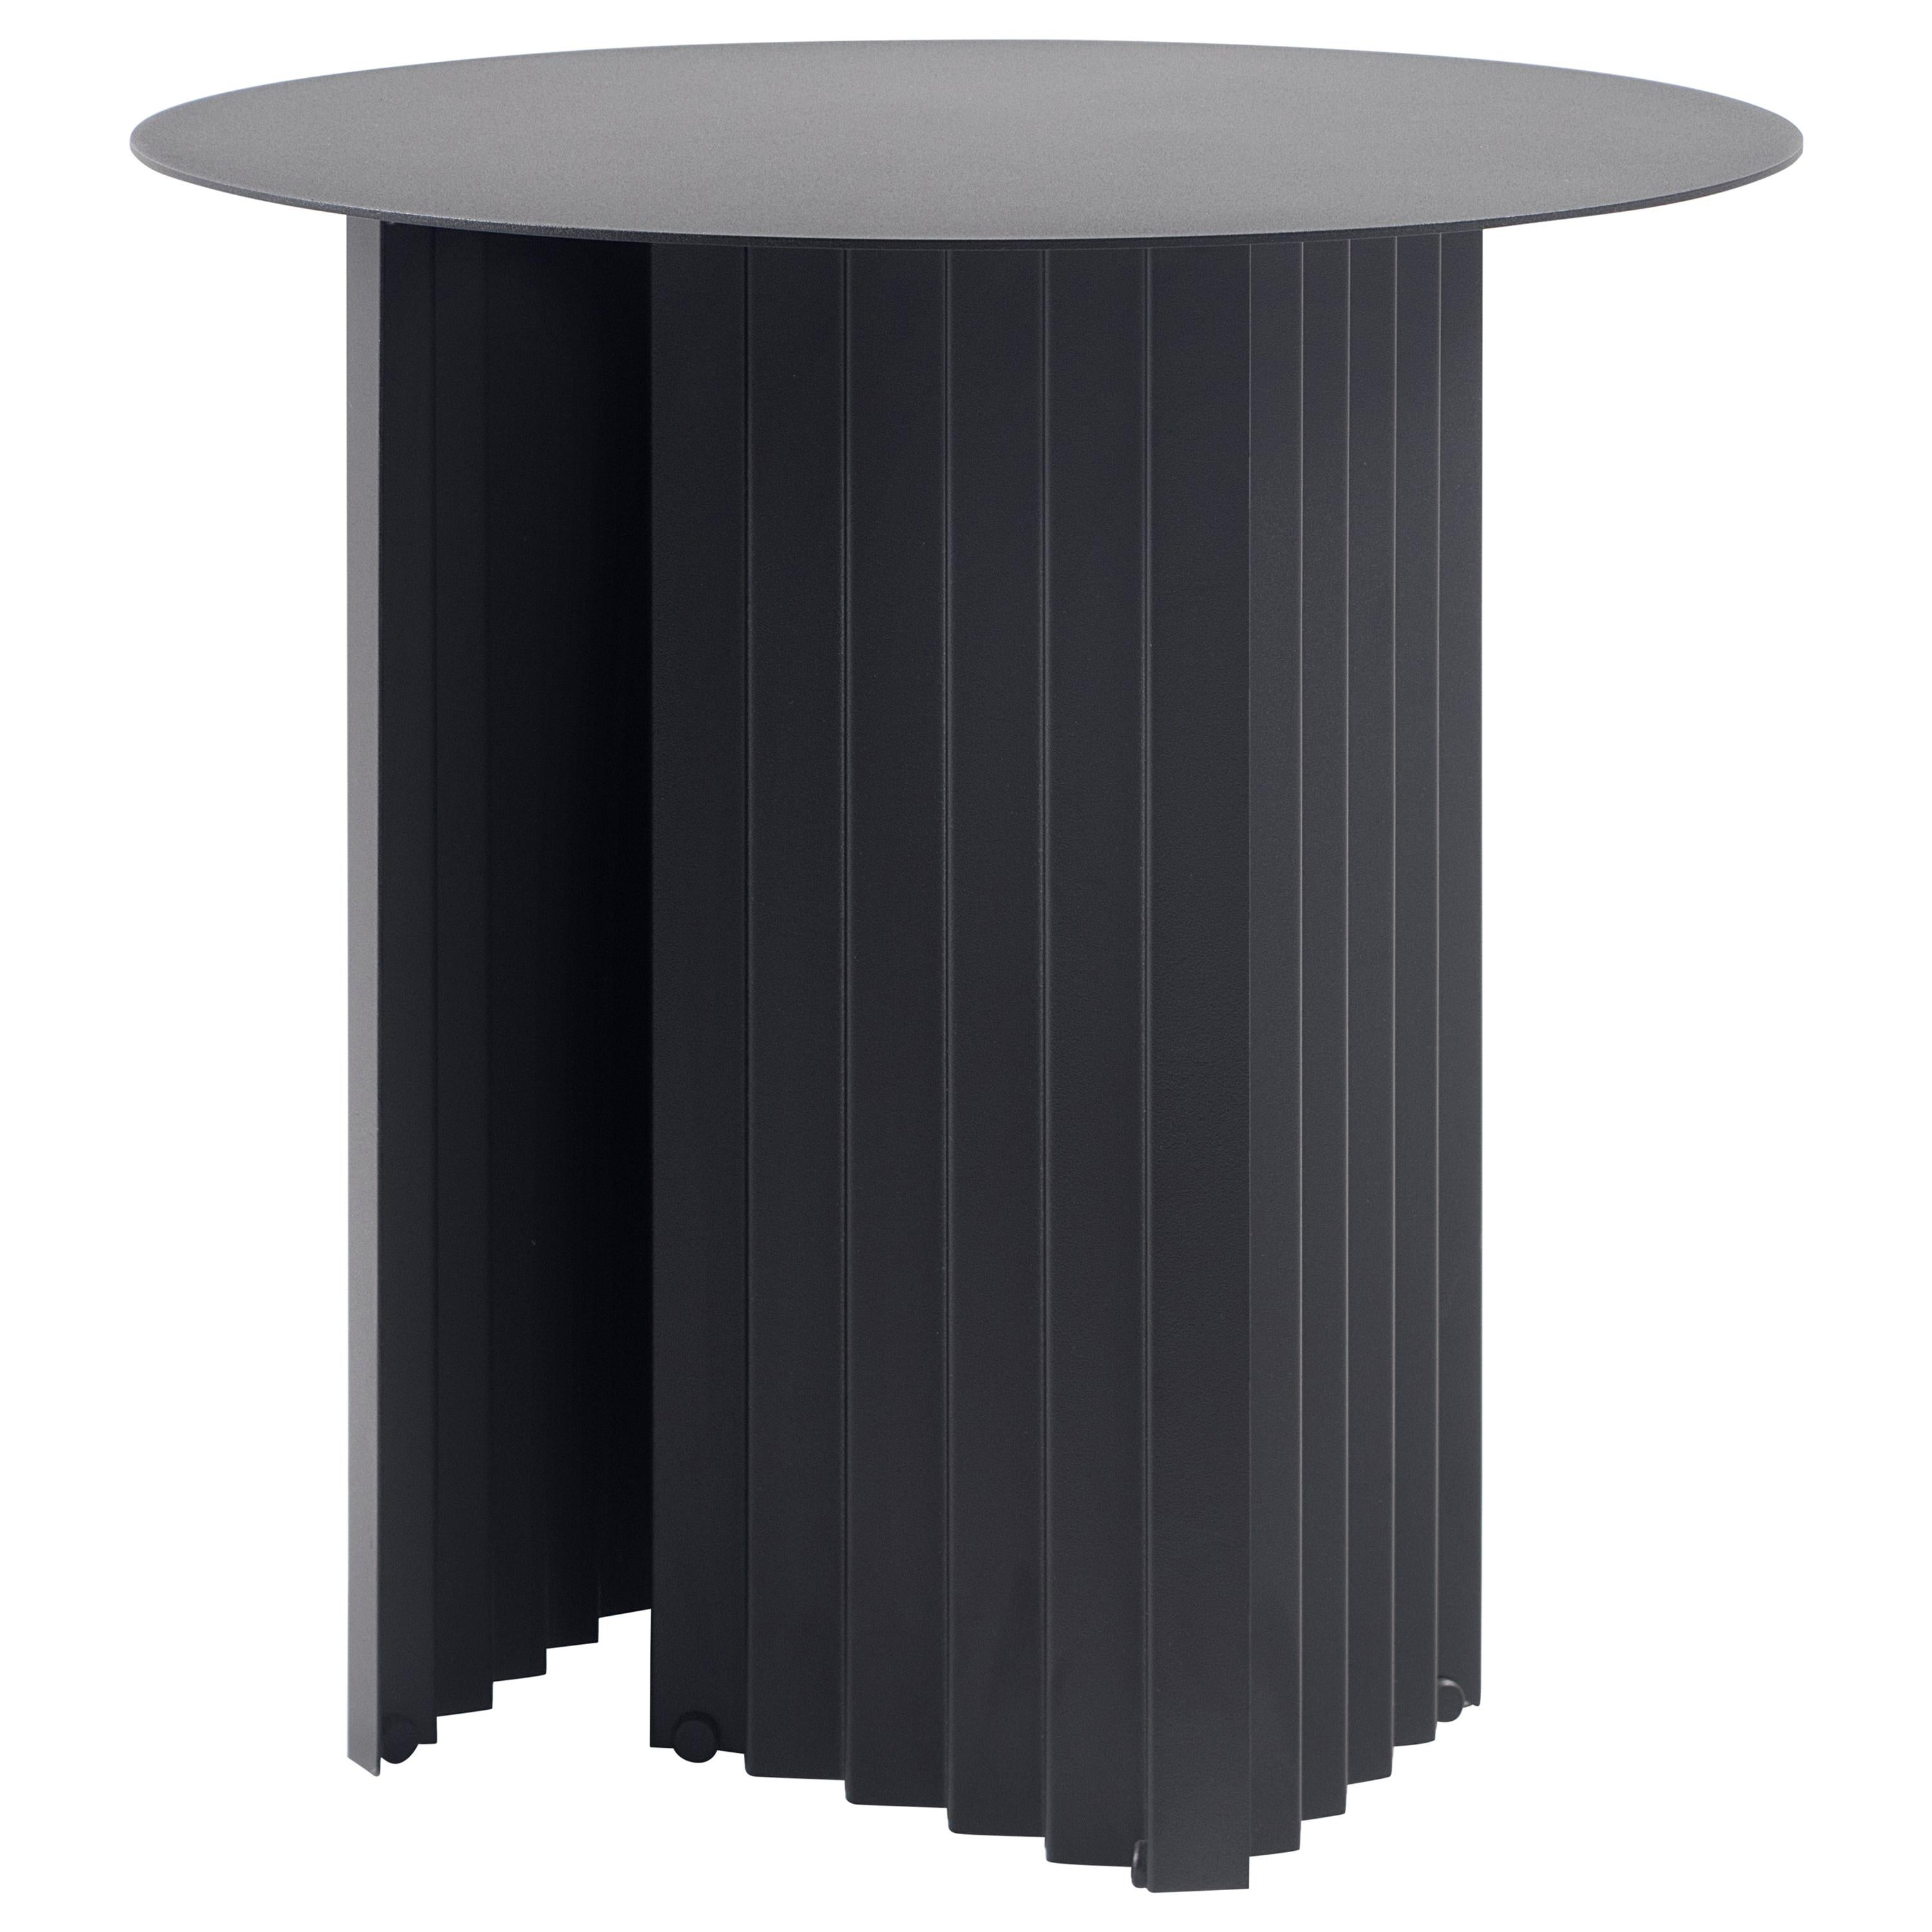 RS Barcelona Plec Round Small Table in Black Metal by A.P.O.